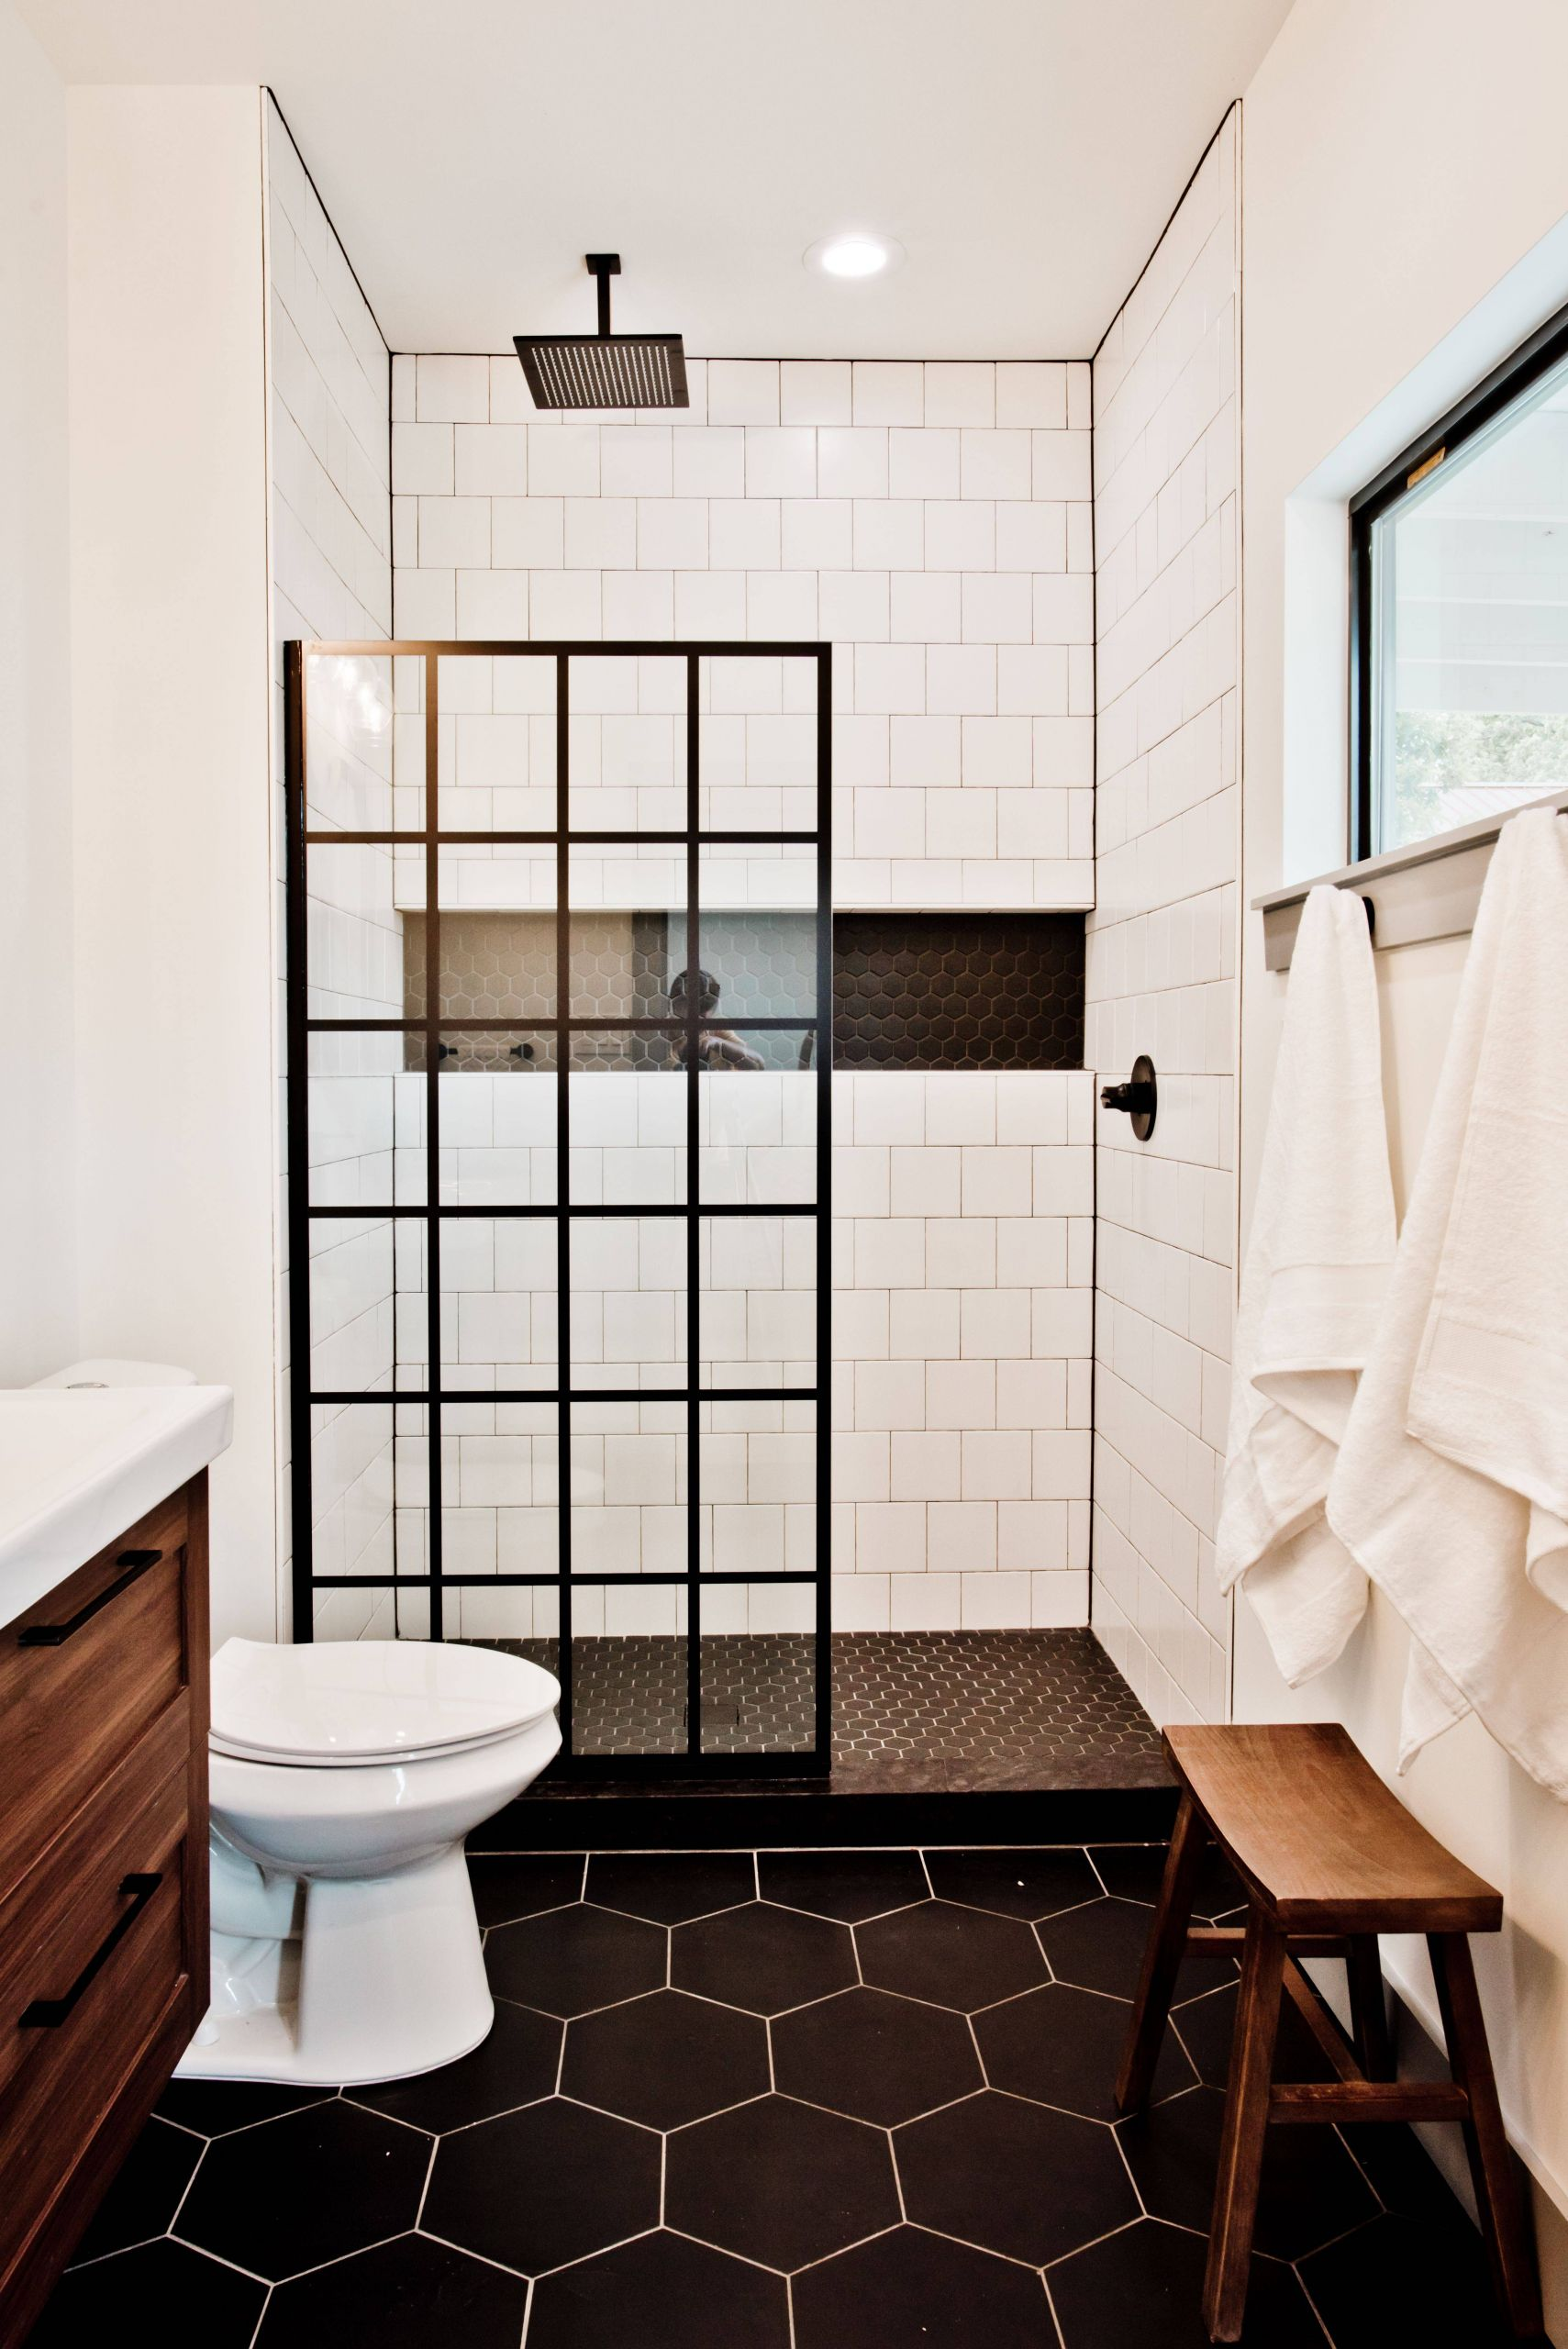 Exceptional Decorative 4x4 Ceramic Tiles Luxury Black Hex Bathroom